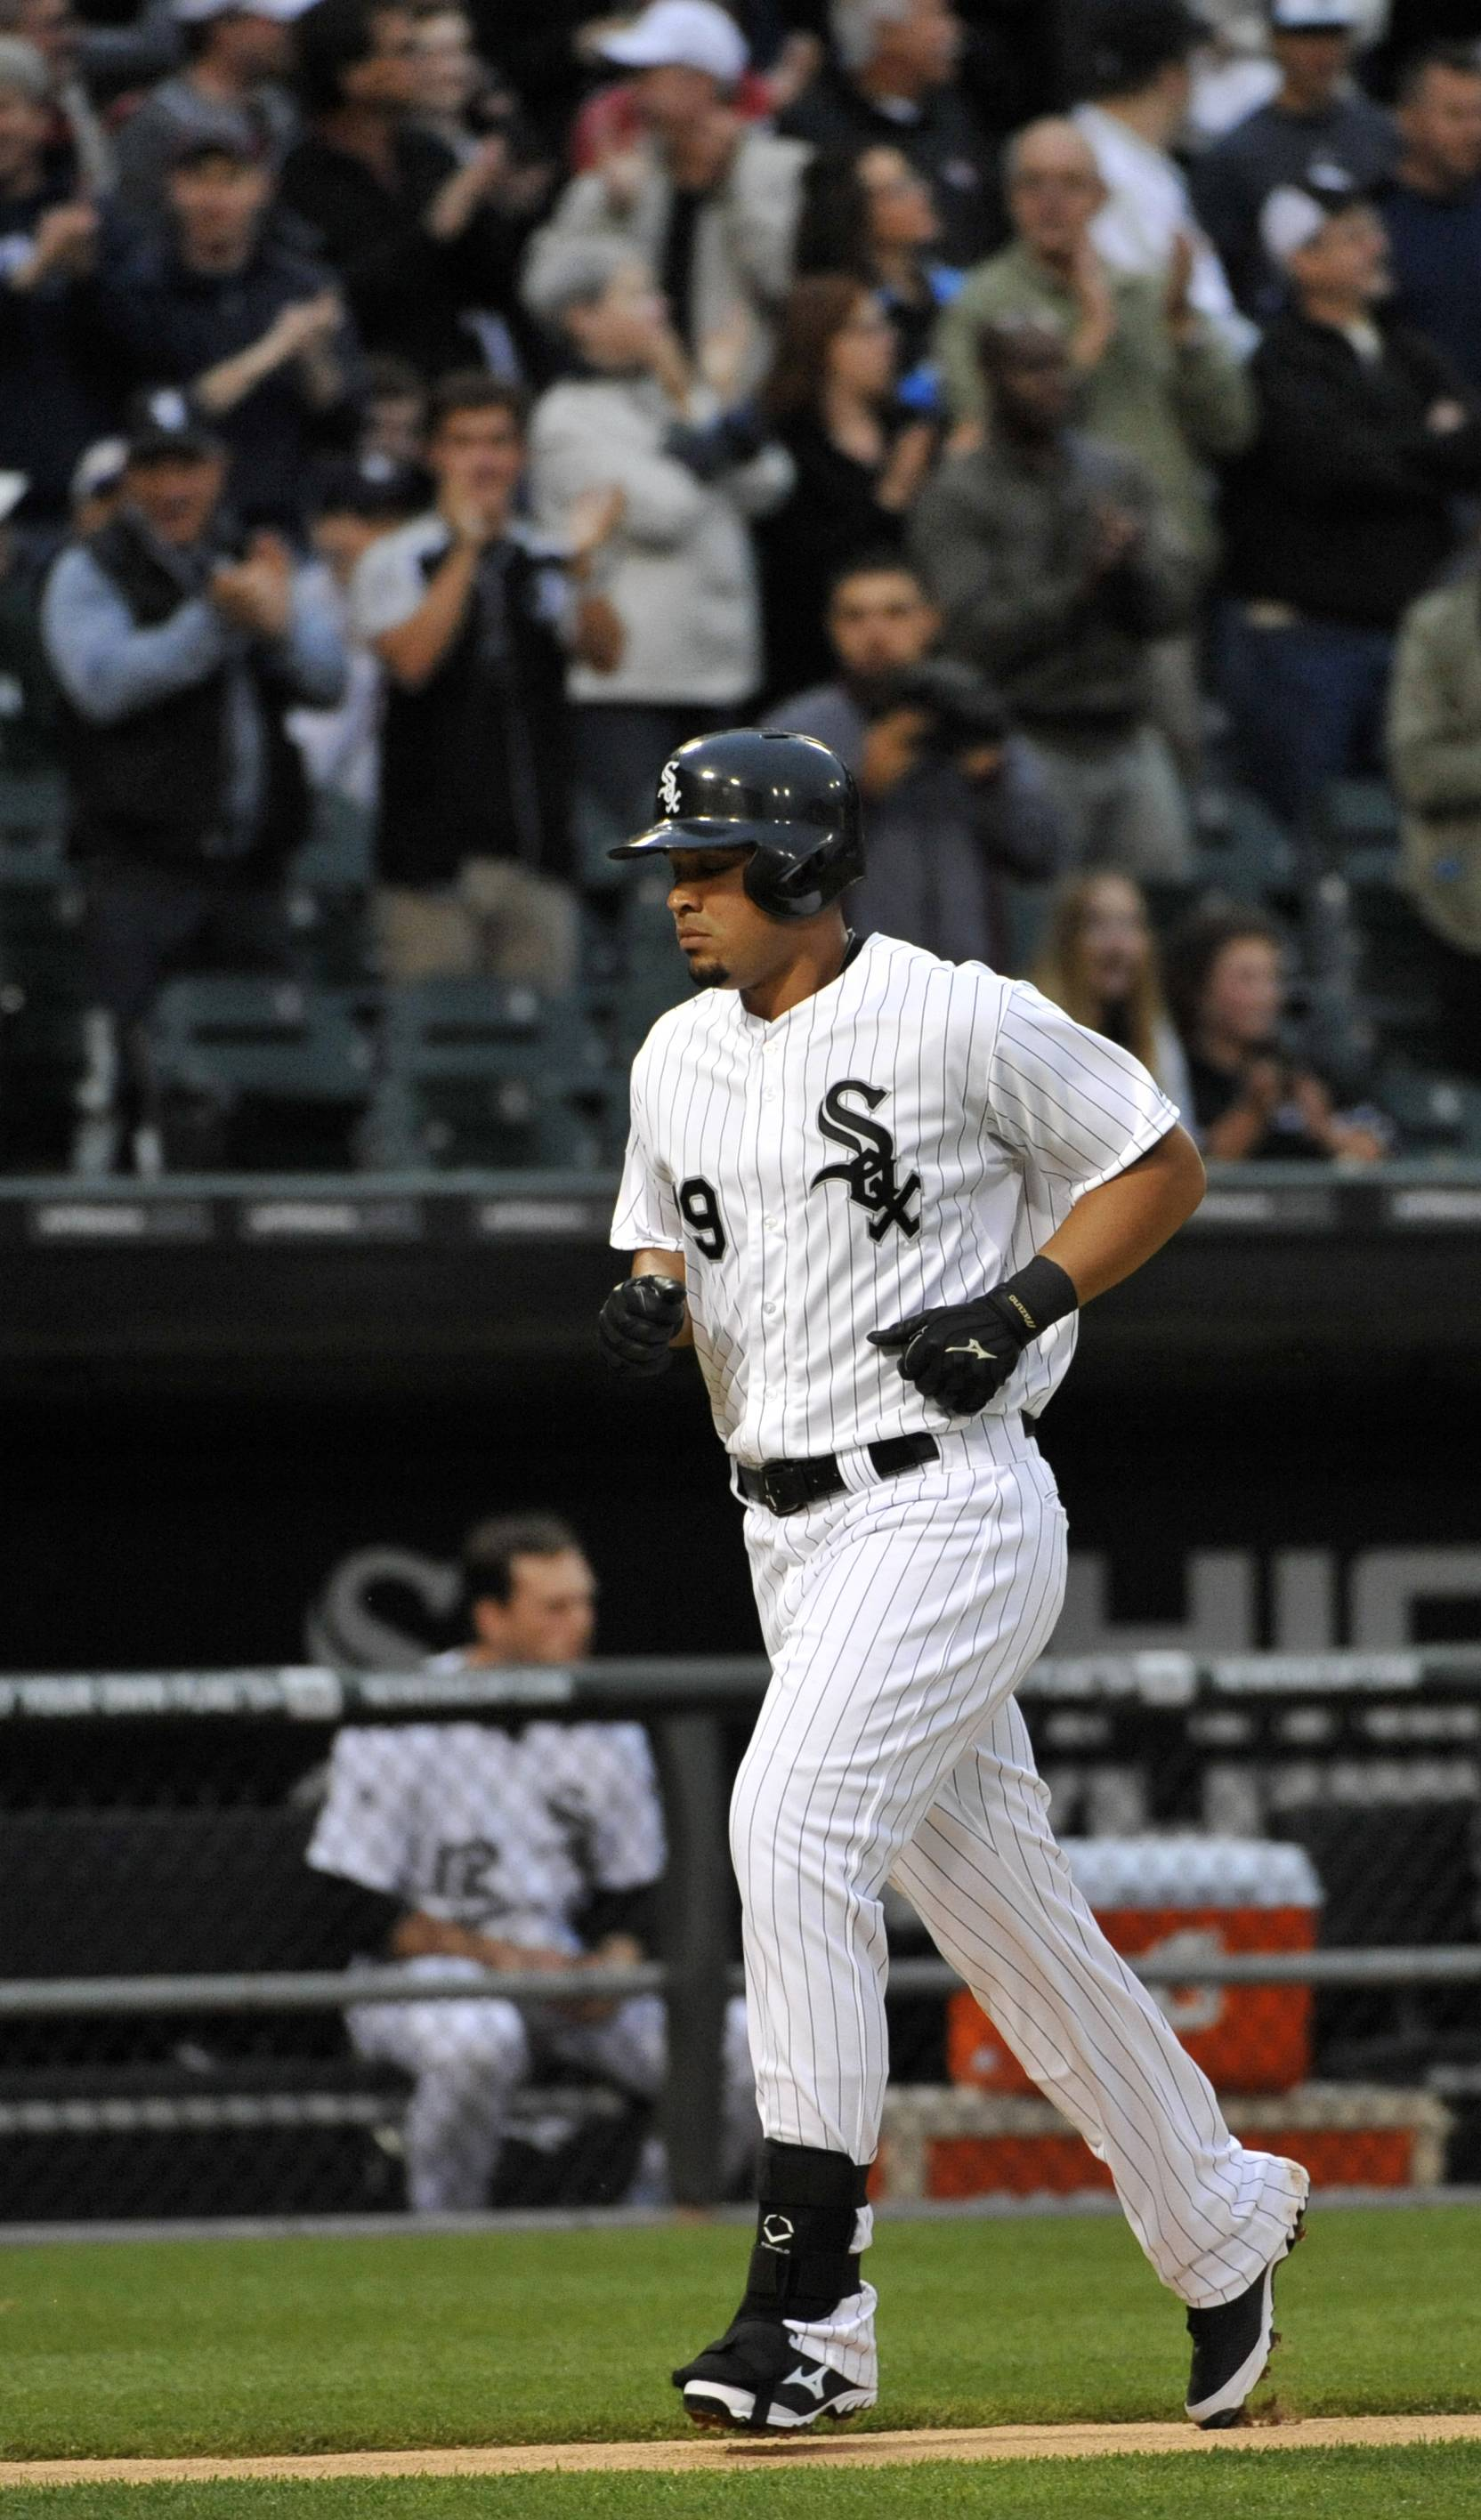 White Sox first baseman Jose Abreu rounds the bases after hitting a solo home run in the second inning of Wednesday night's 8-2 victory over the Tigers at U.S. Cellular Field.